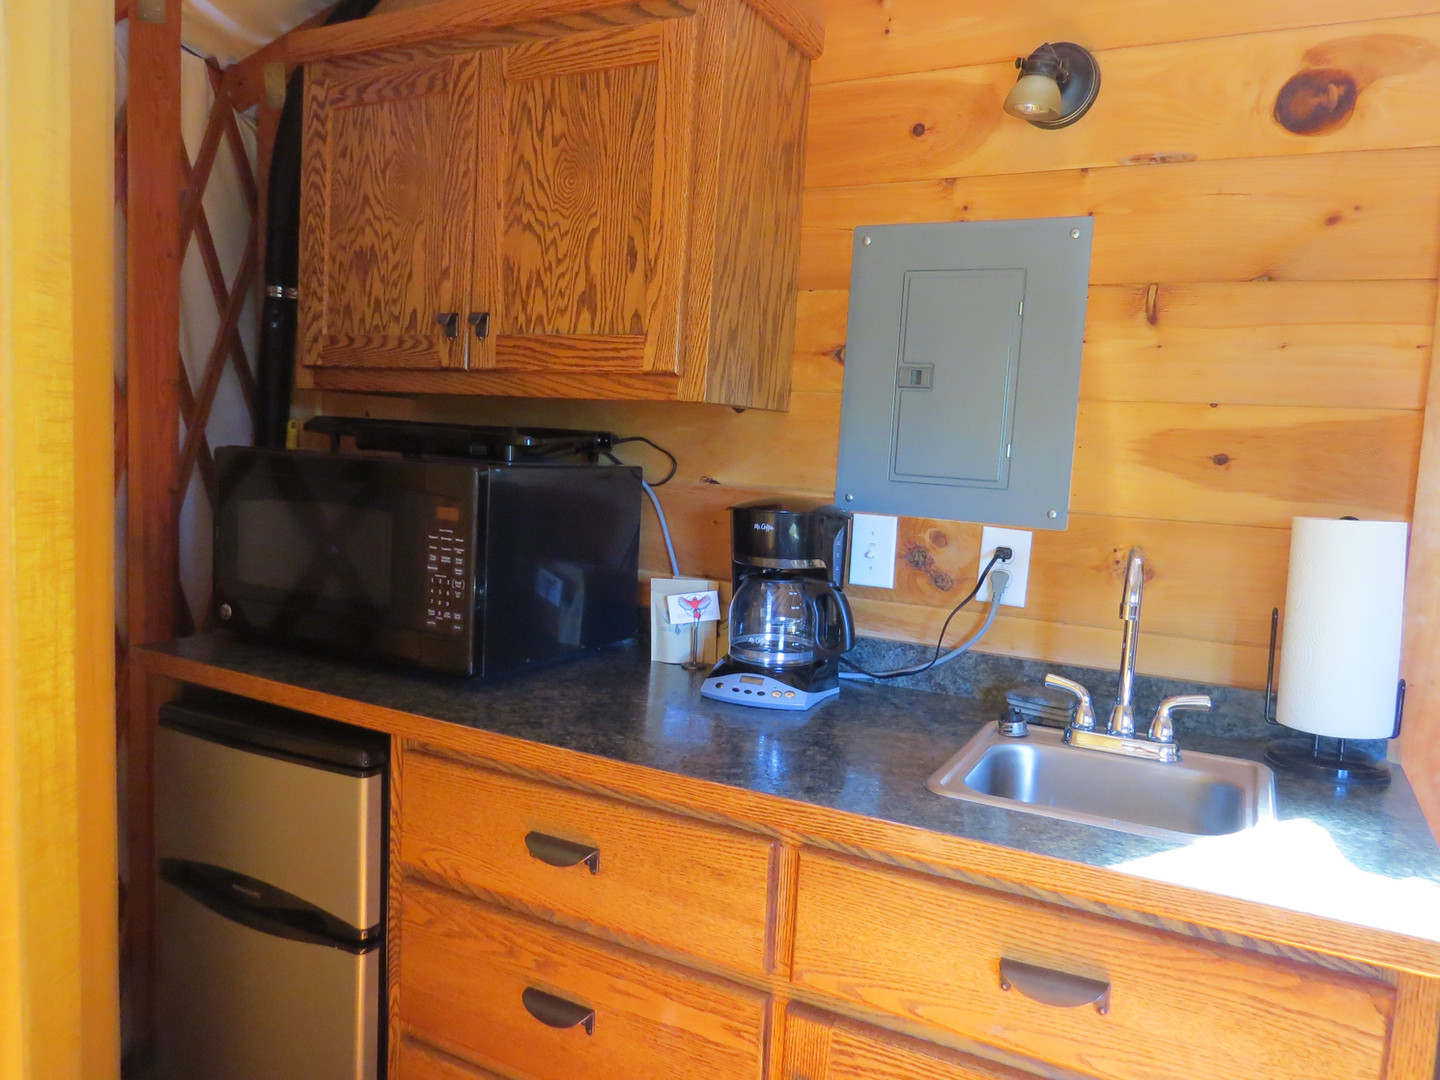 A small efficiency kitchen with a small fridge, microwave, coffee pot, sink, electric skillet, toaster, dishes, flatware and a gas grill are available in the Nantahala yurt.